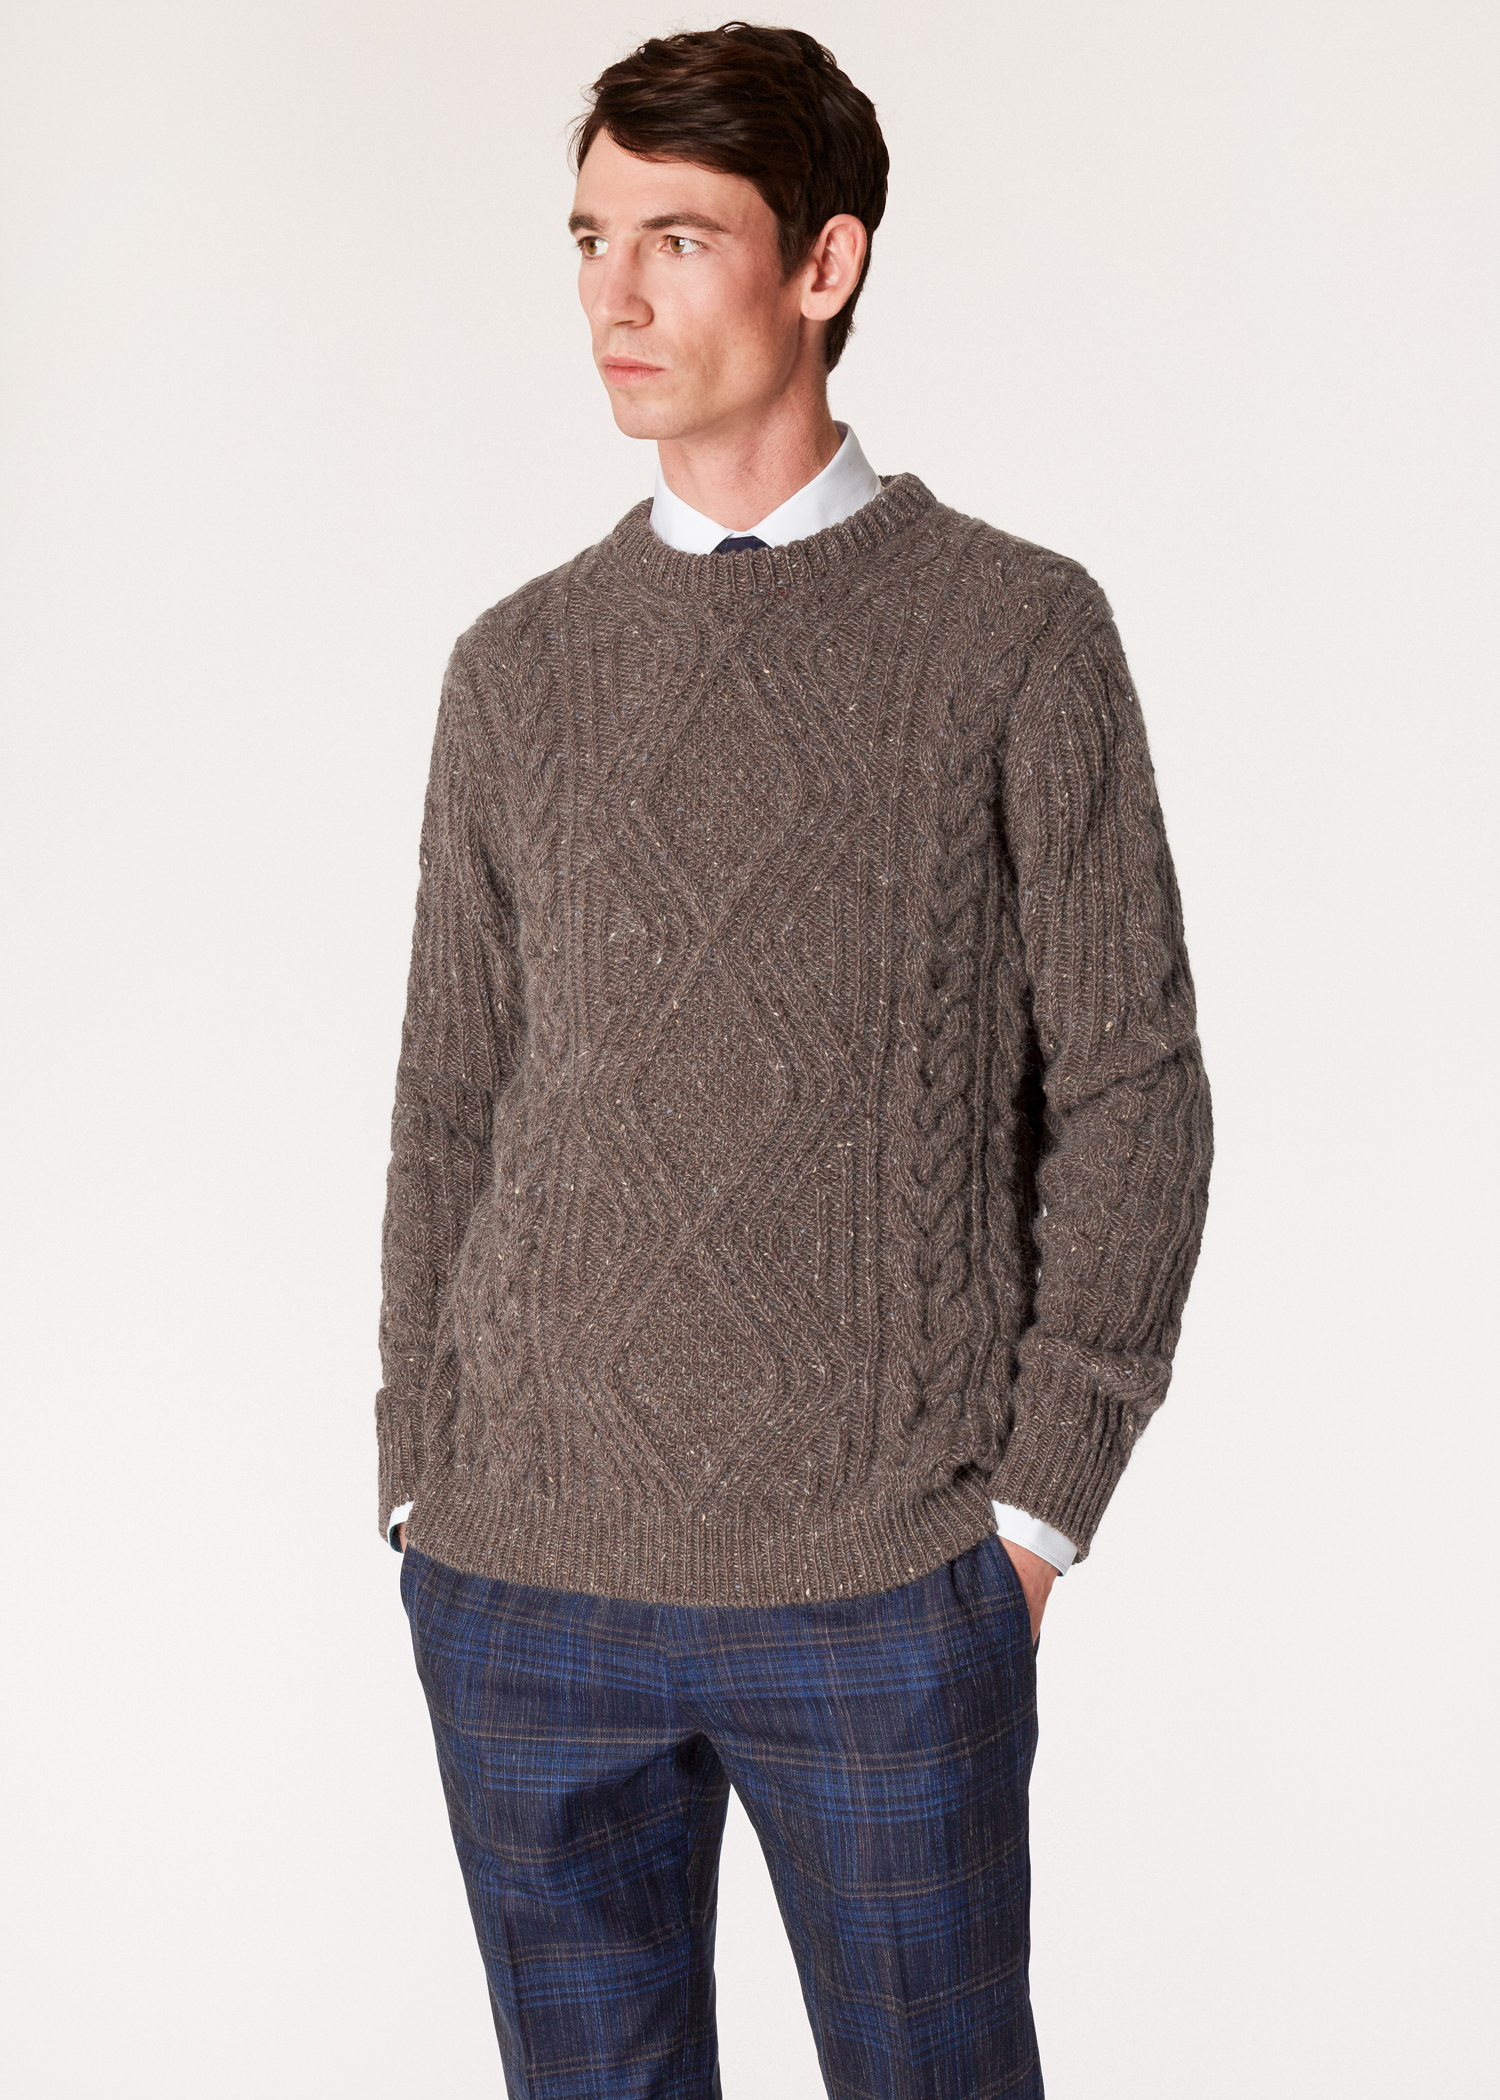 dec750613871eb Model front close up - Men's Brown Wool-Mohair Donegal Cable-Knit Sweater  Paul